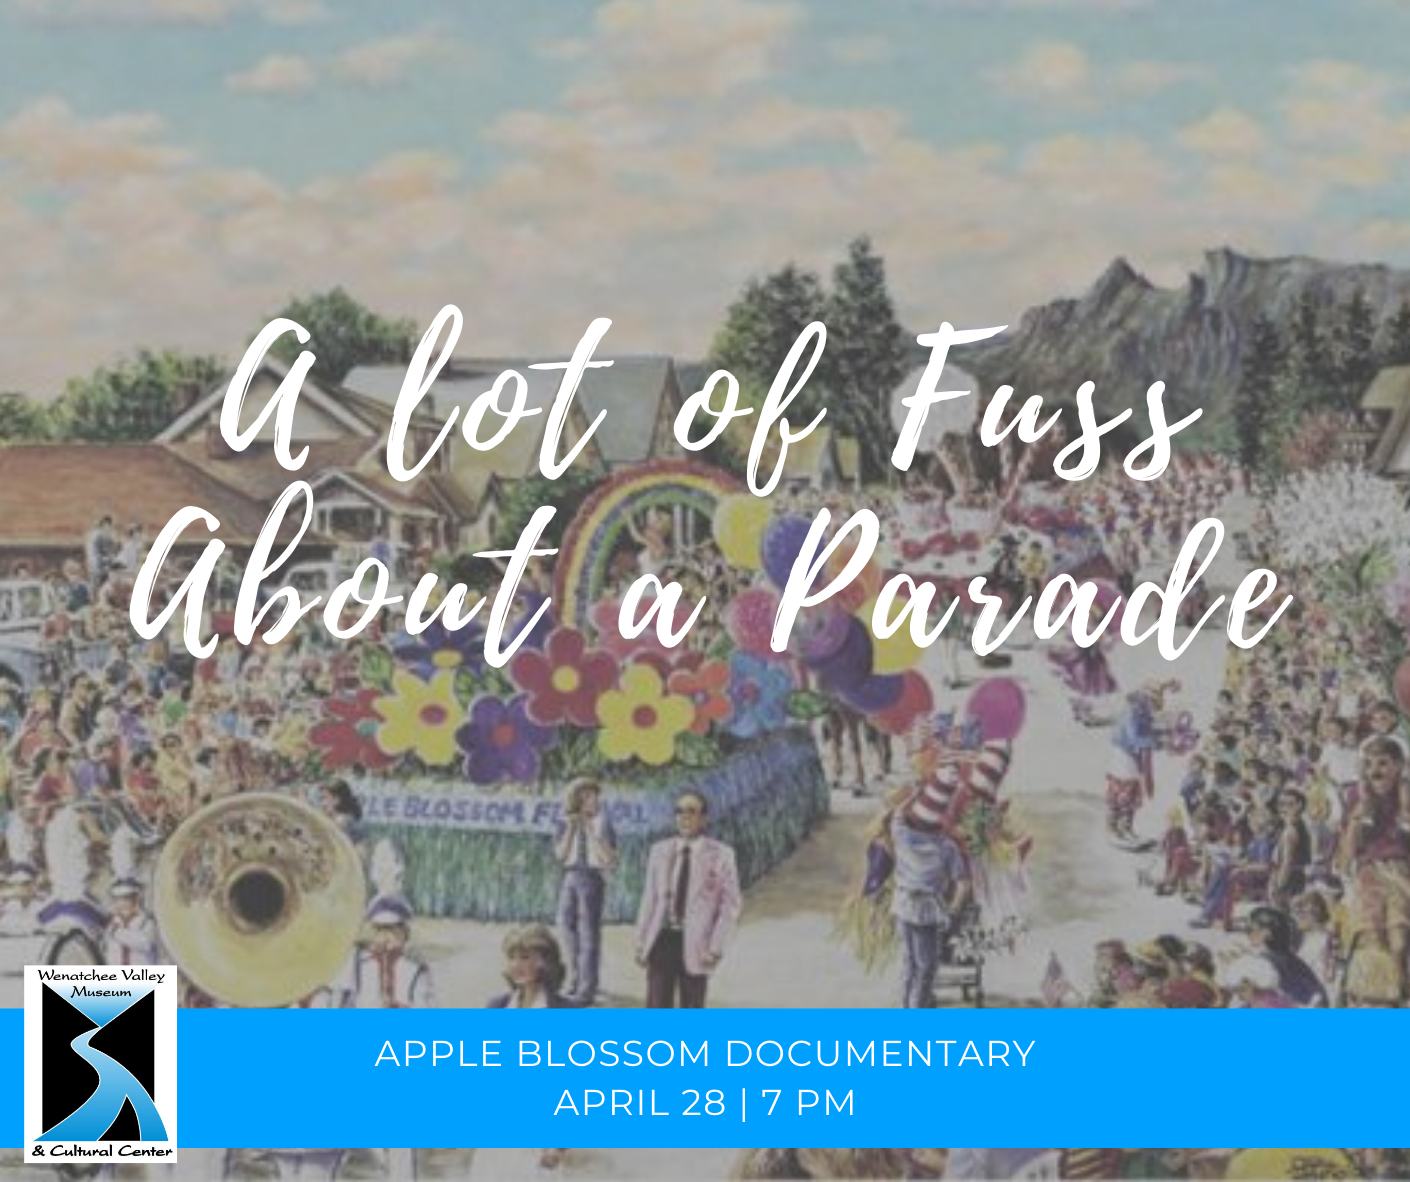 Apple Blossom Parade Documentary April 28